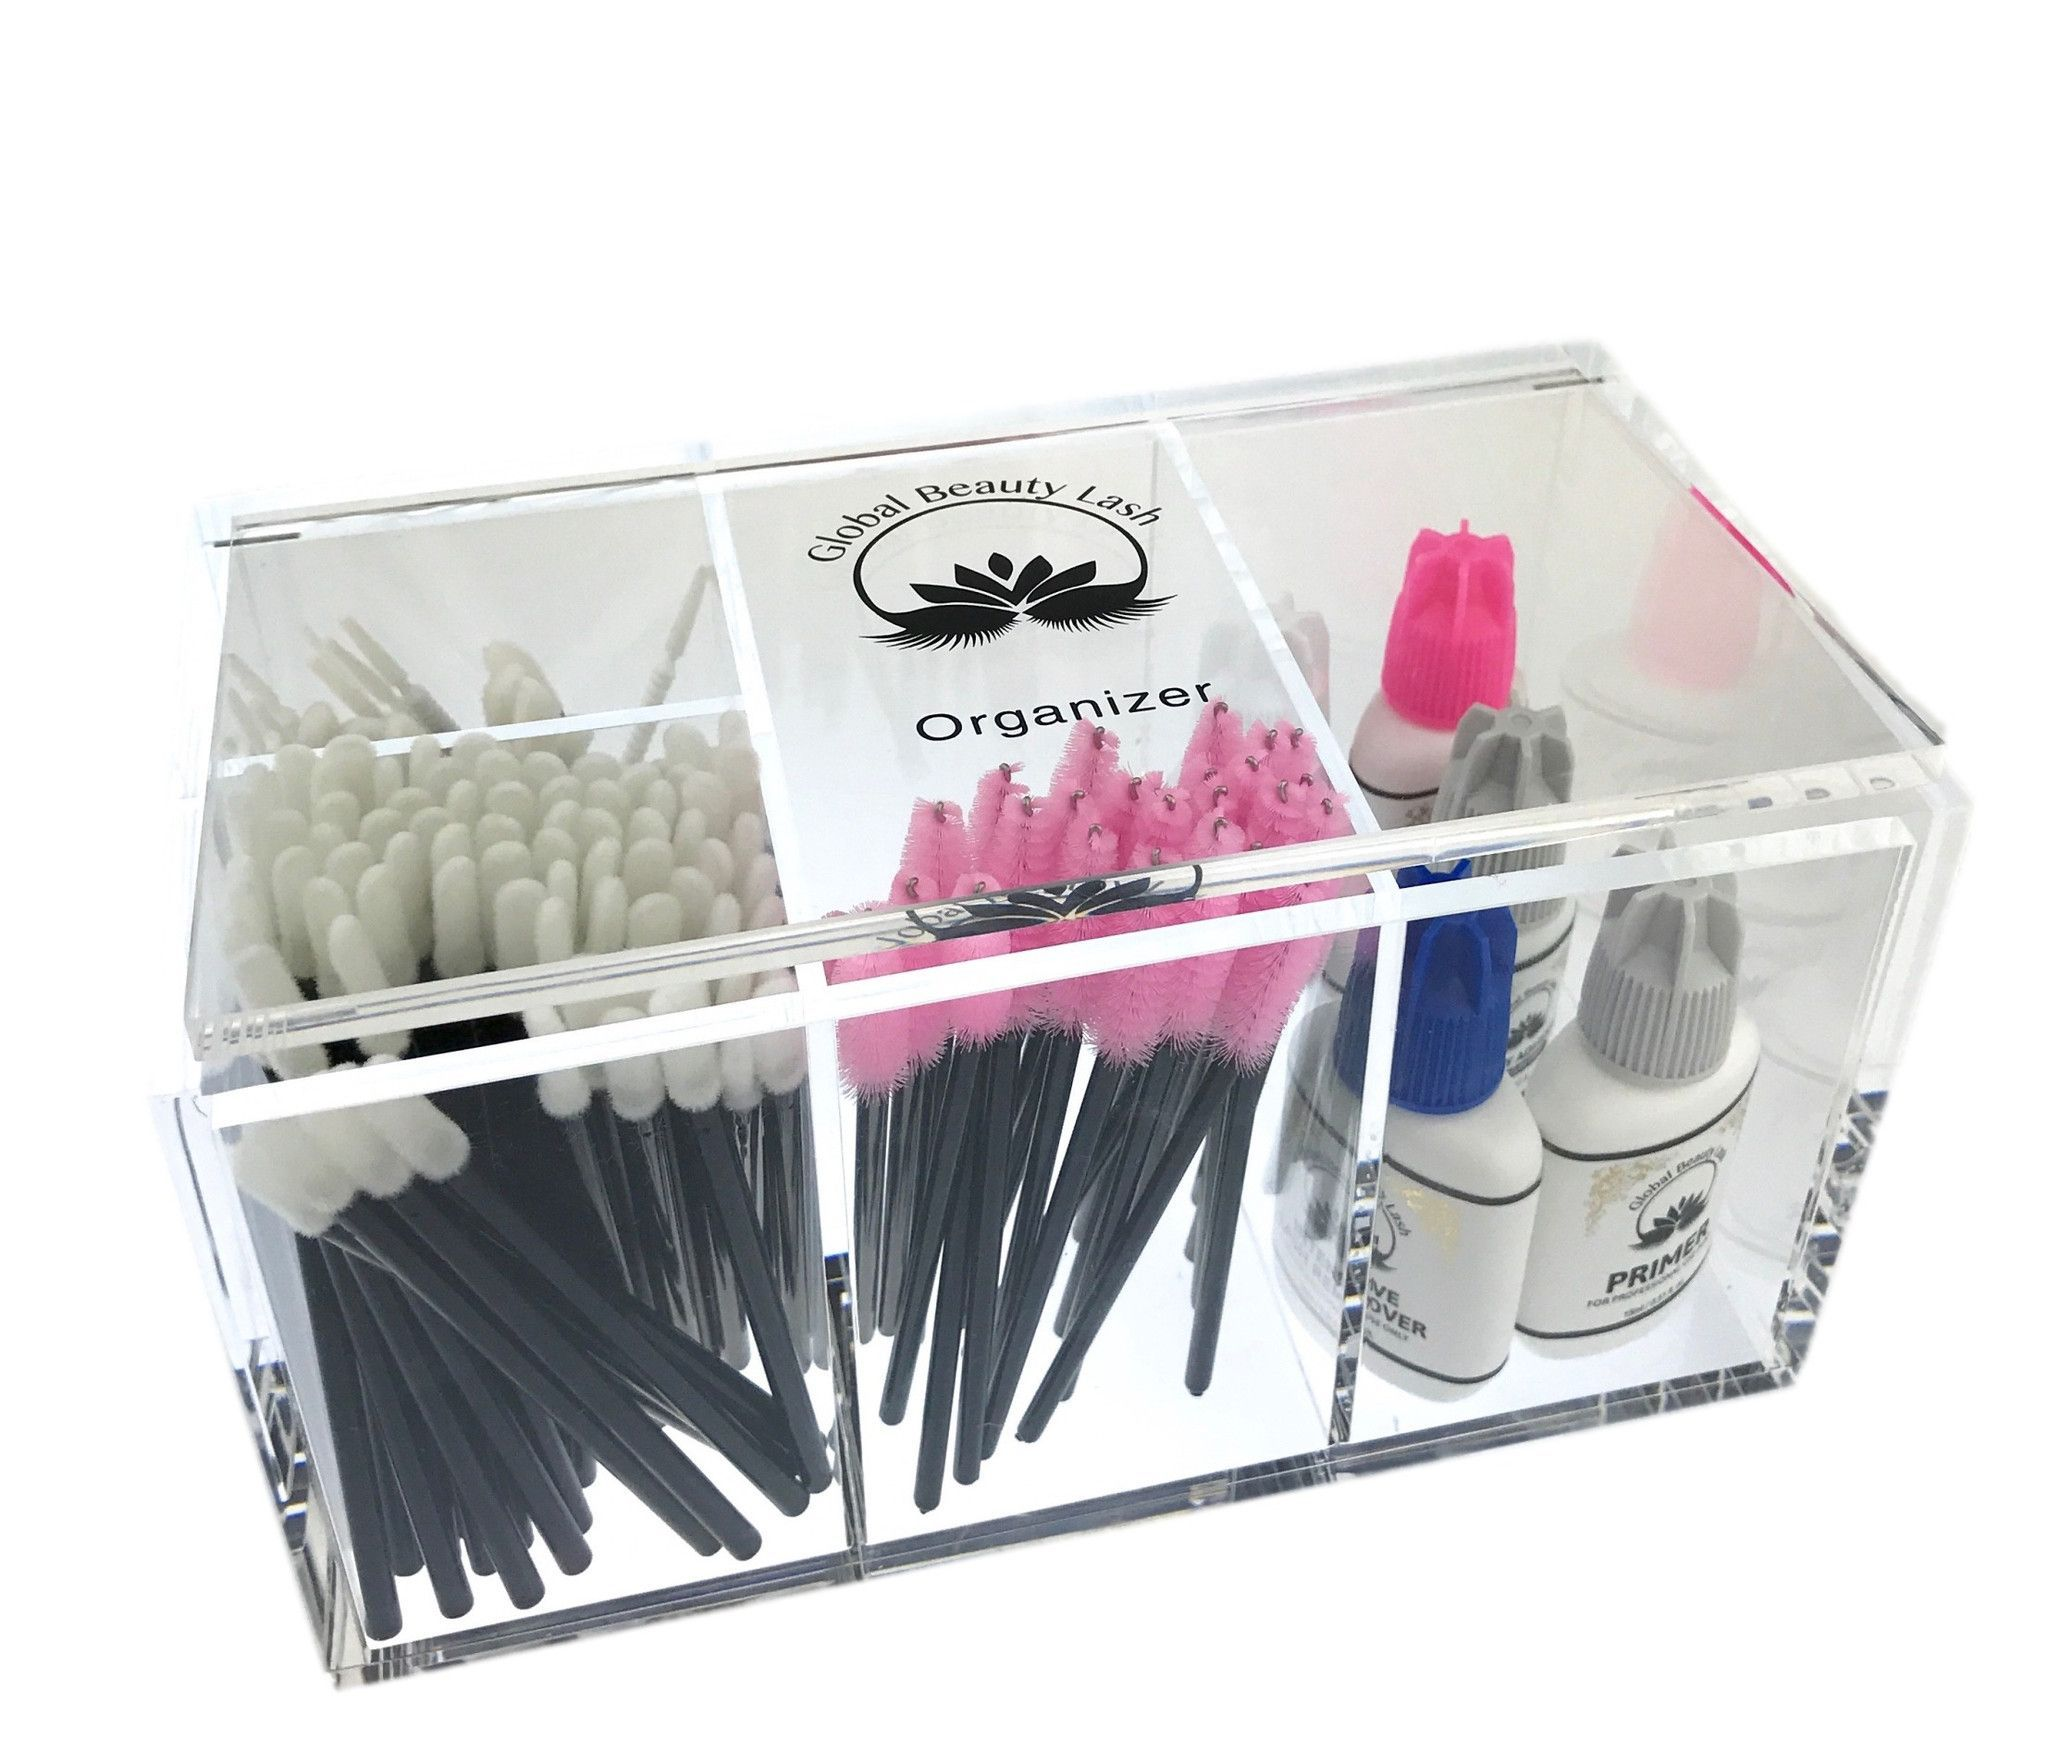 0a1b00897e3 Lash Application Organizer | Lash | Lashes, Eyelash salon, Lash ...